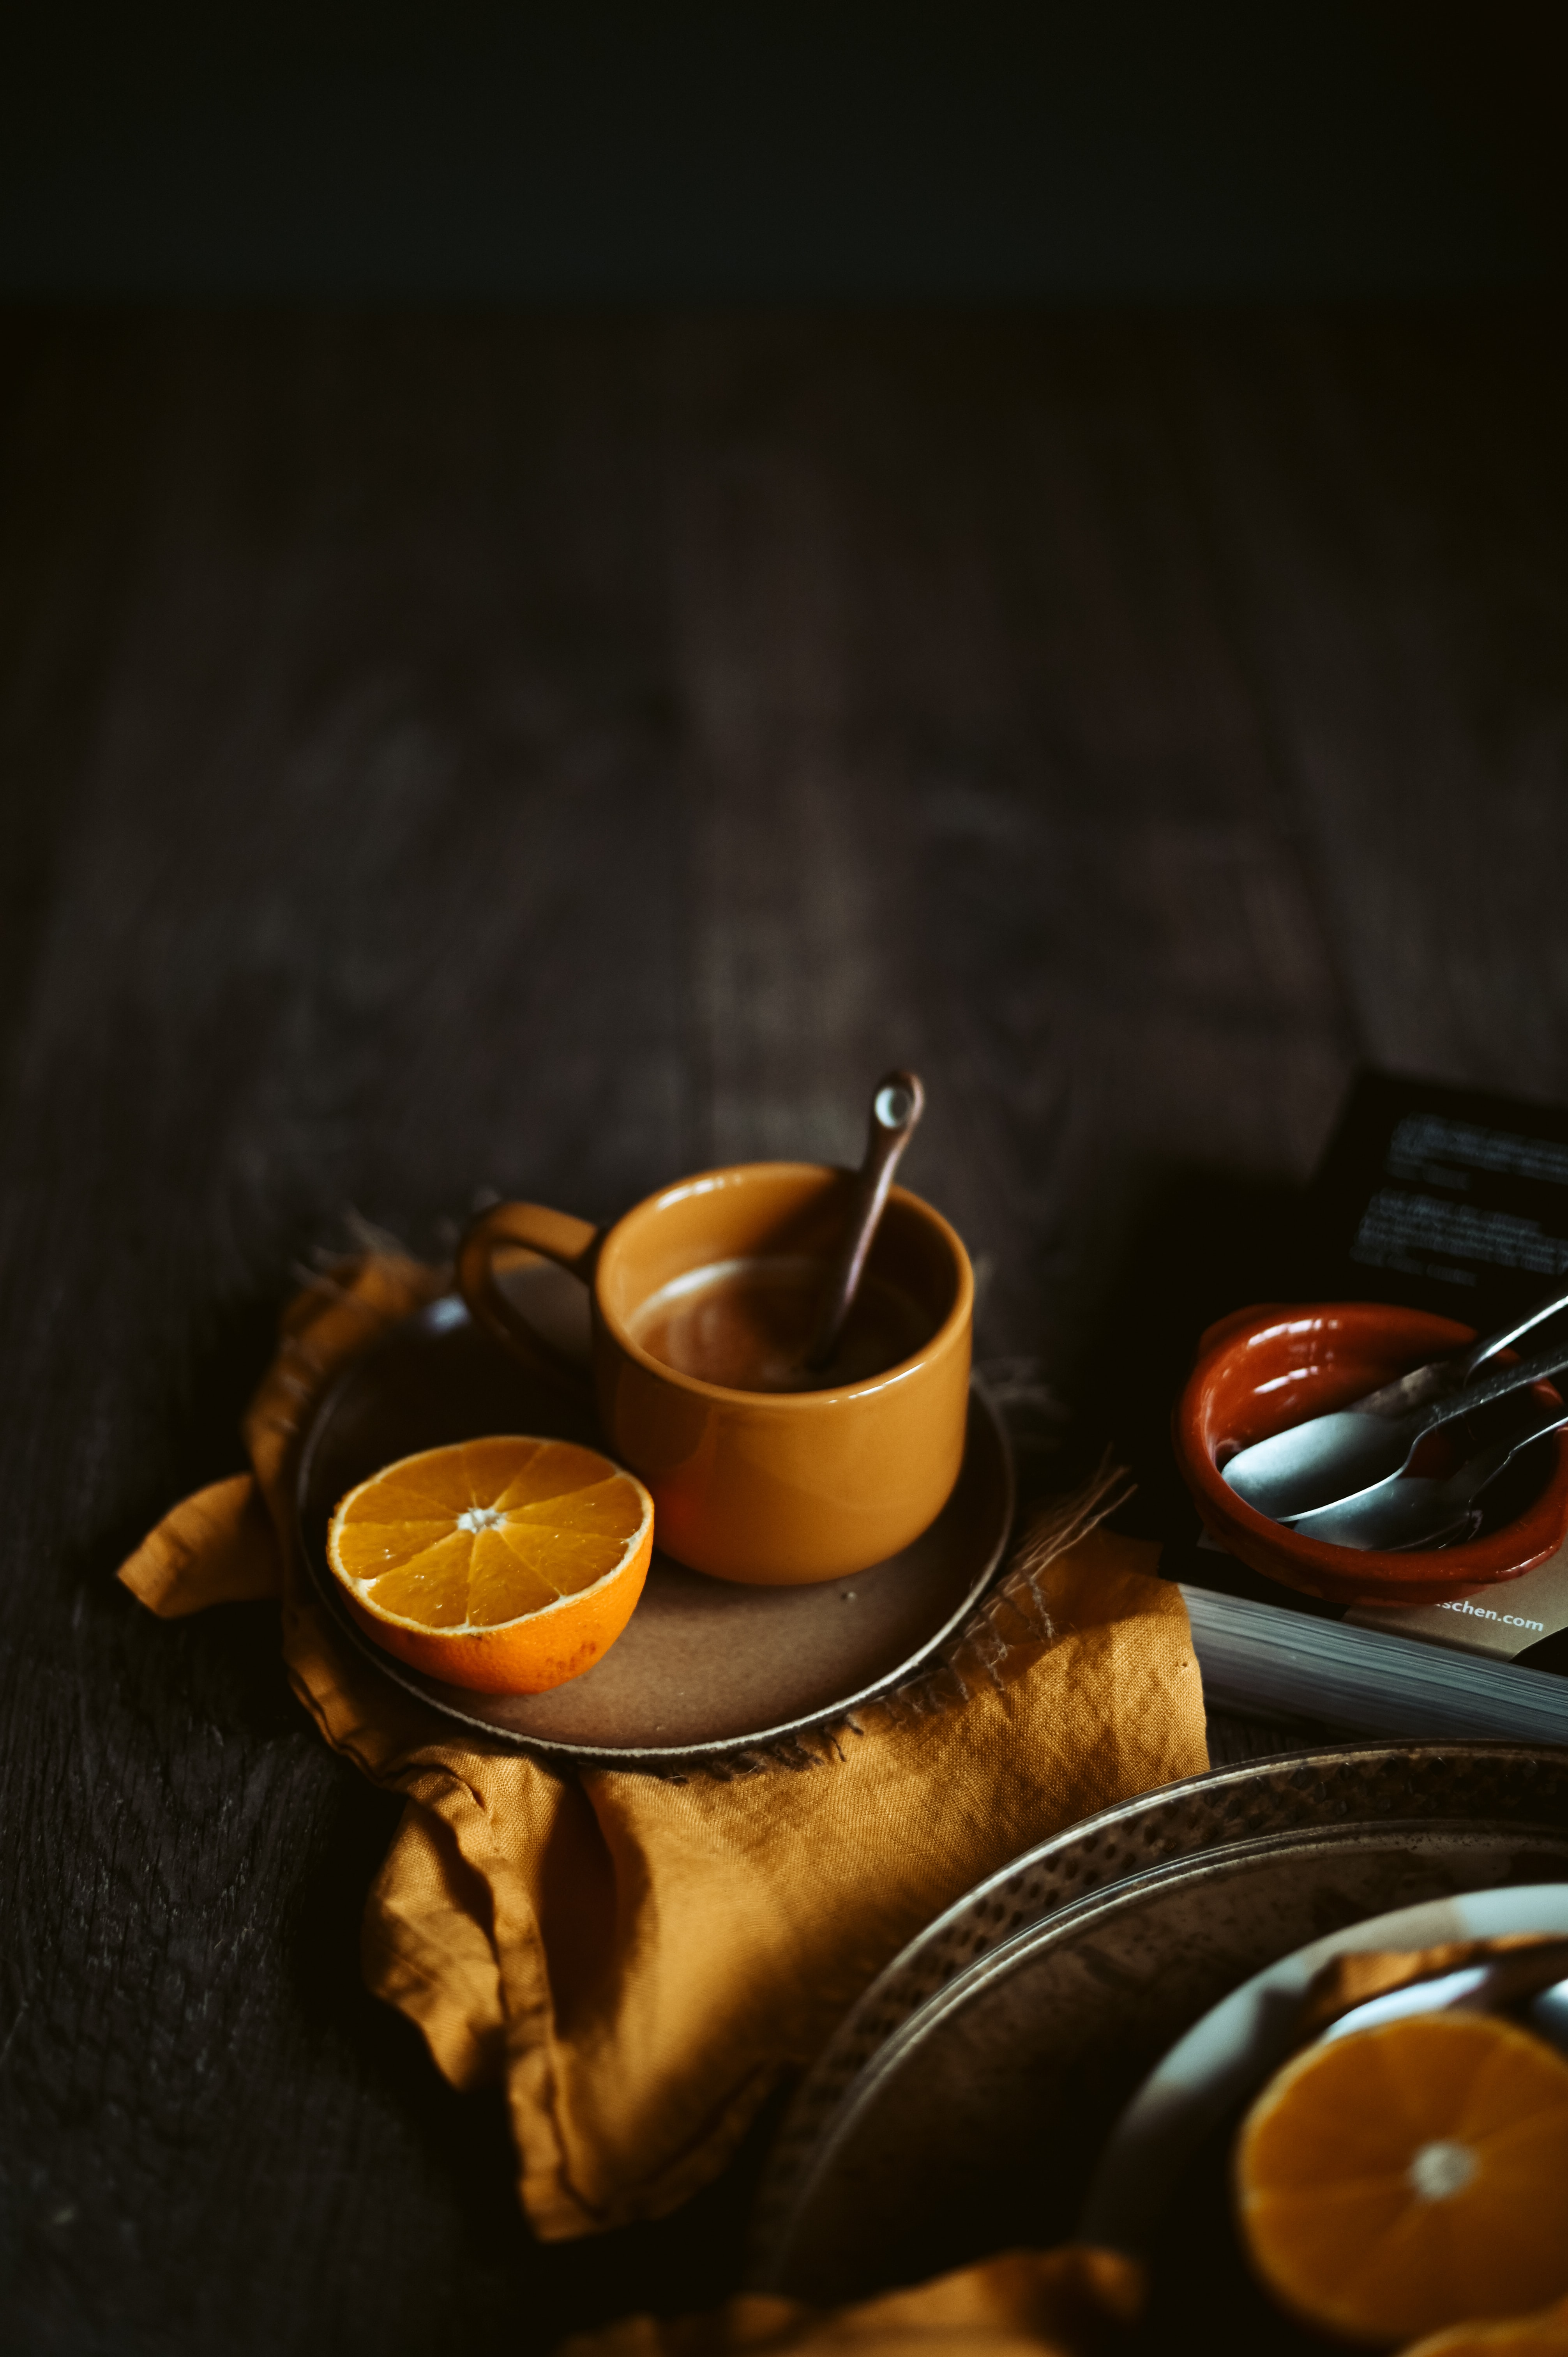 83535 free download Orange wallpapers for phone, Food, Cup, Coziness, Comfort Orange images and screensavers for mobile